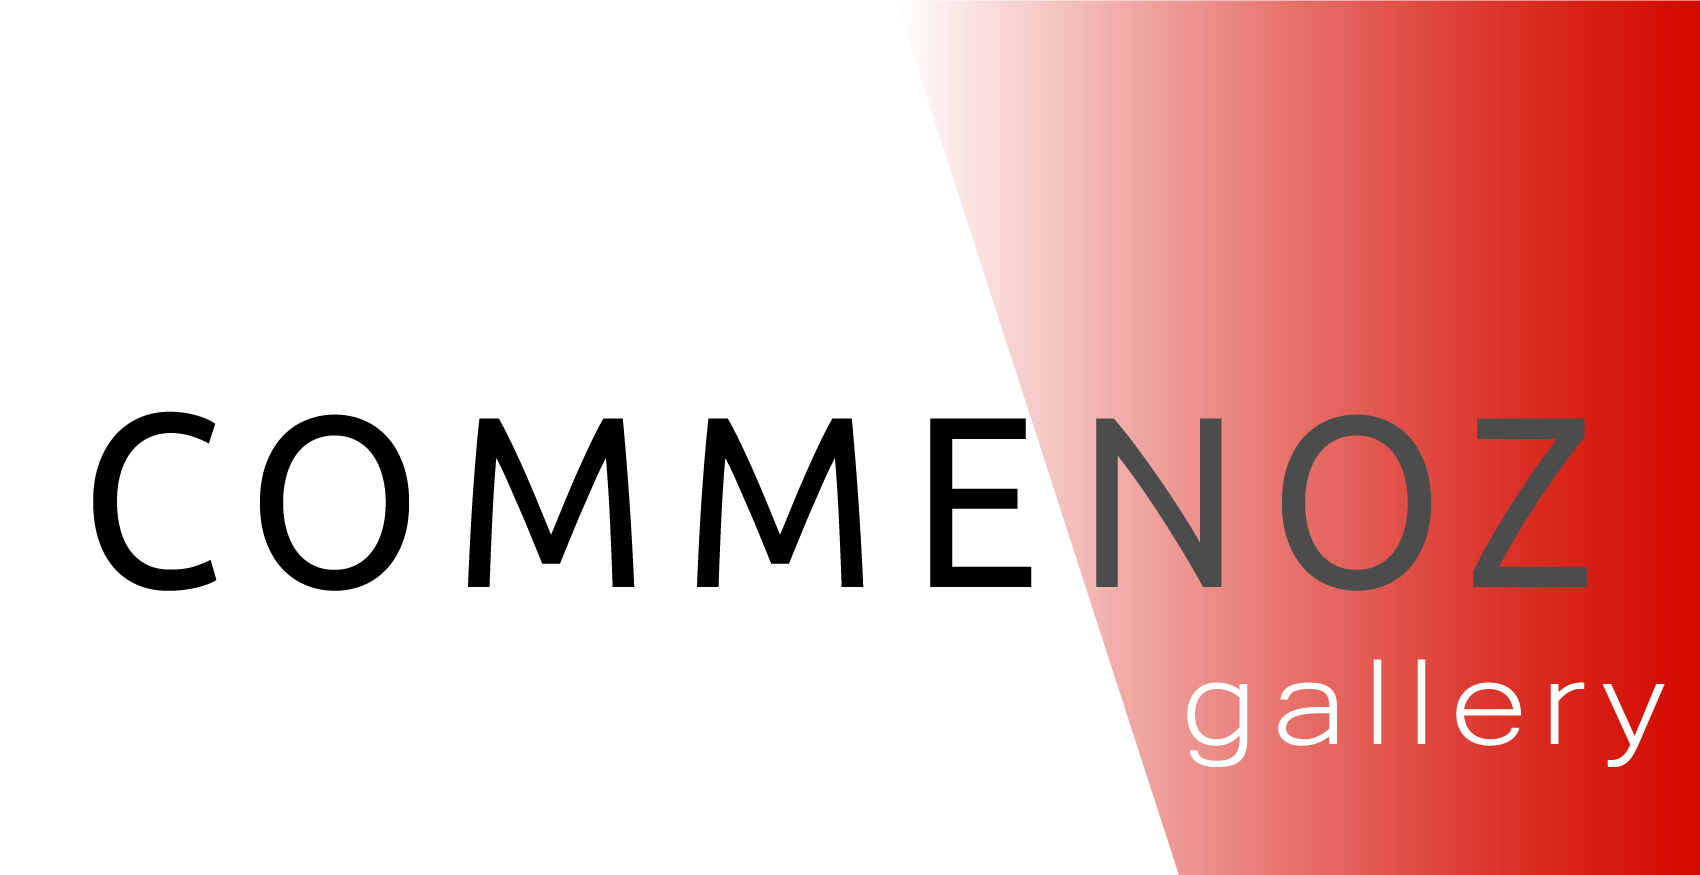 Commenoz Gallery